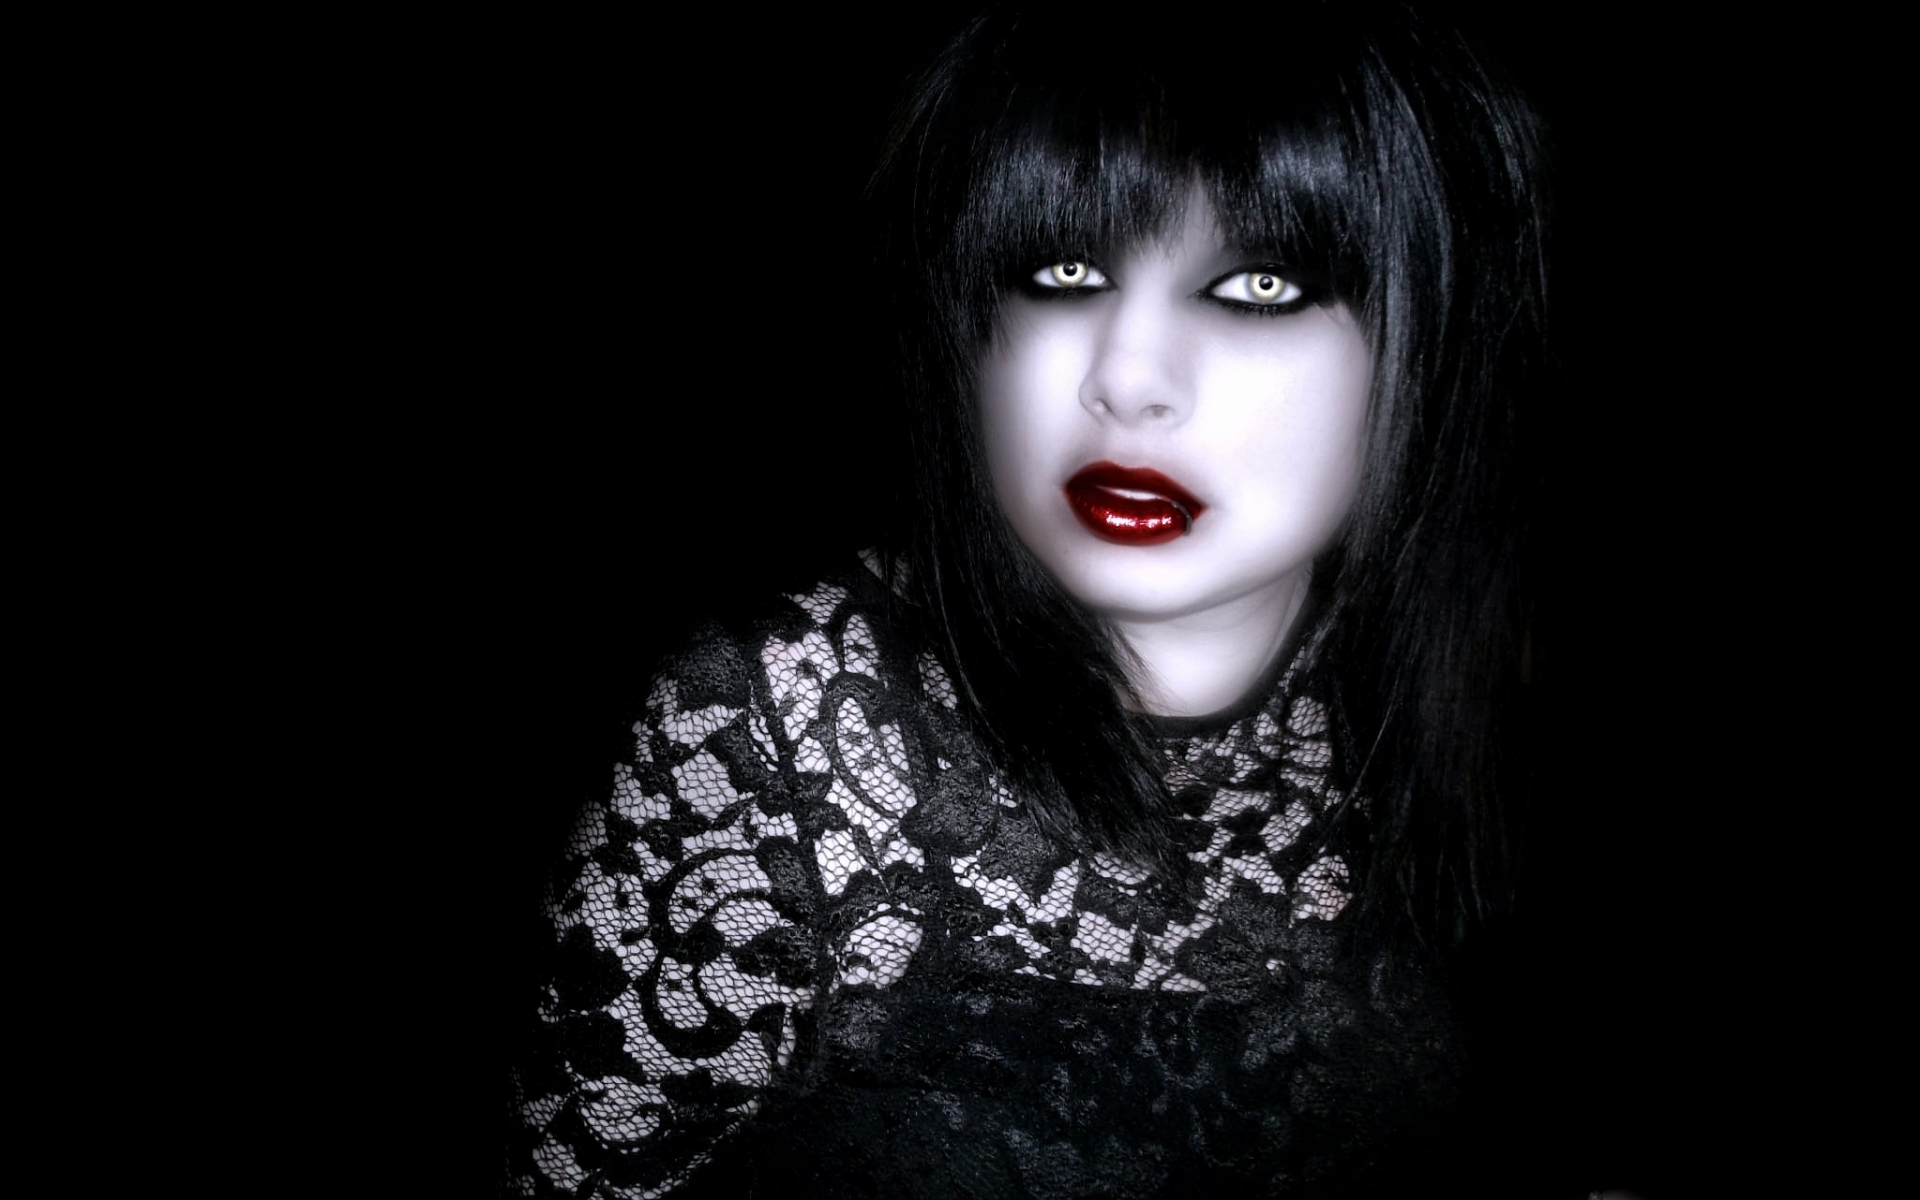 Dark horror gothic fantasy vampire cg digital manip women 1920x1200